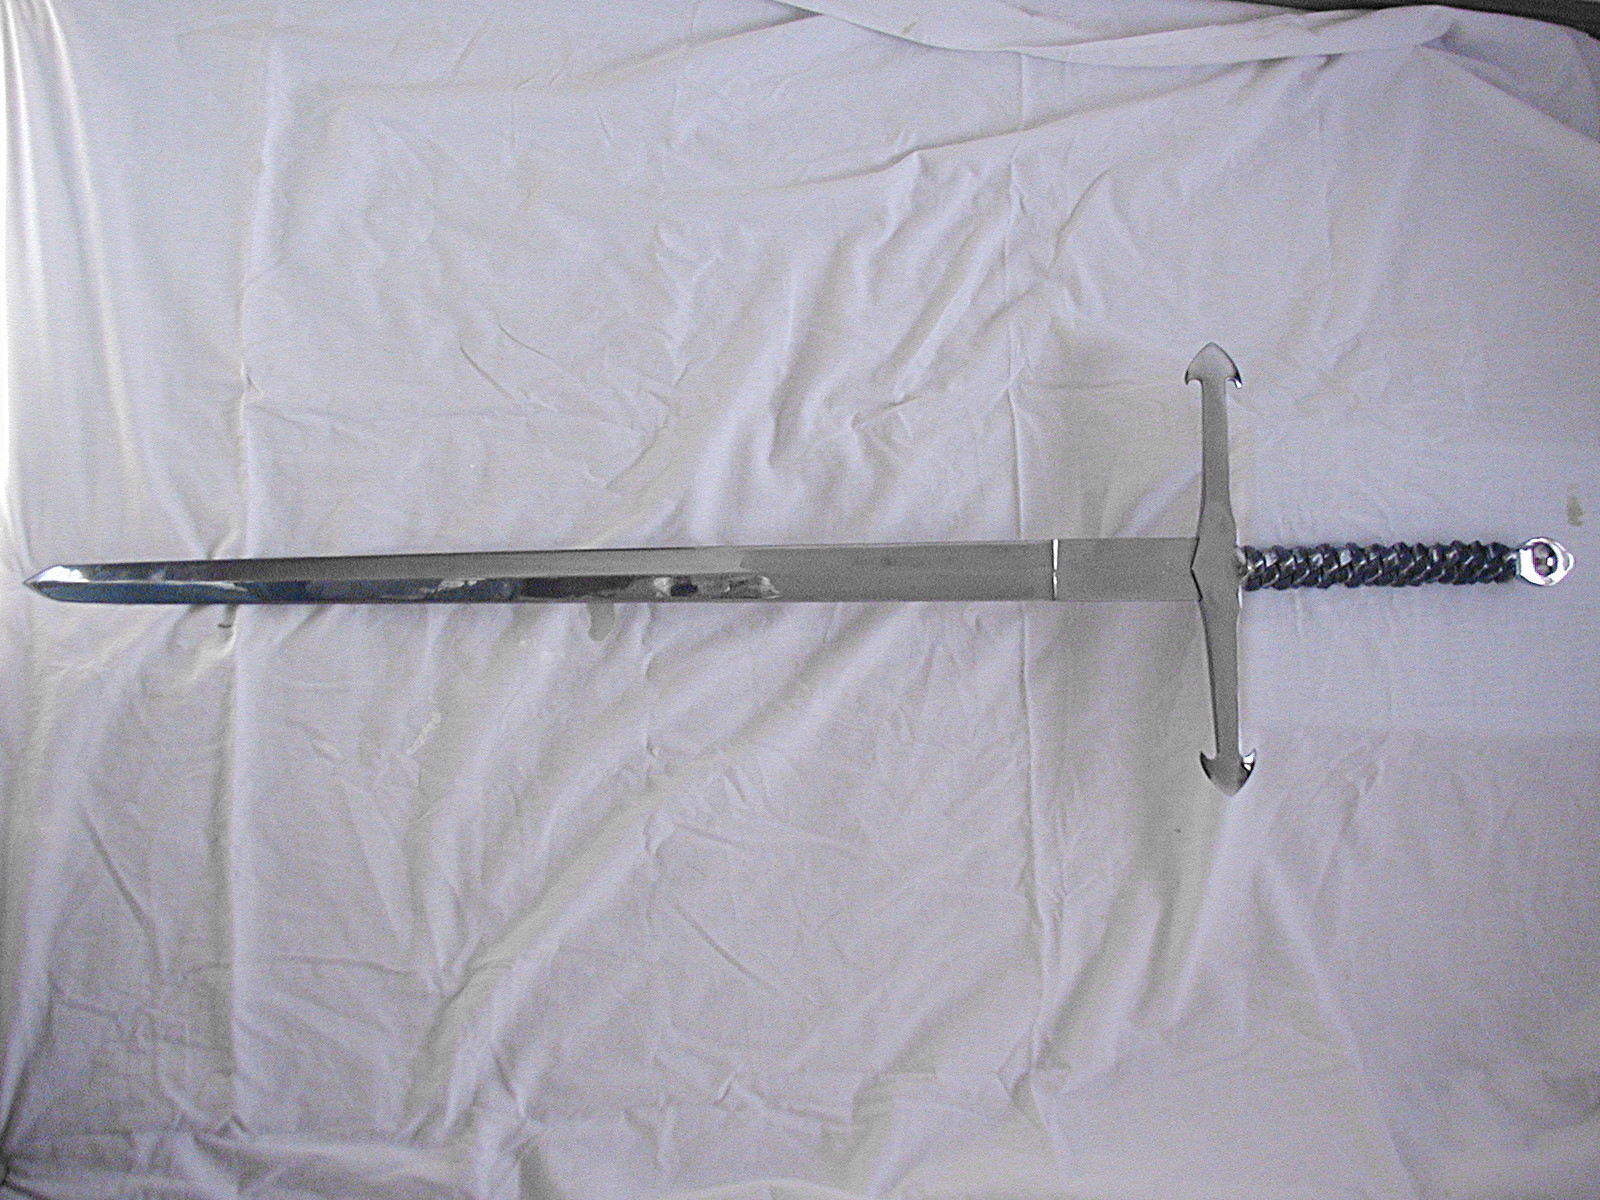 how to make a blacksmith sword